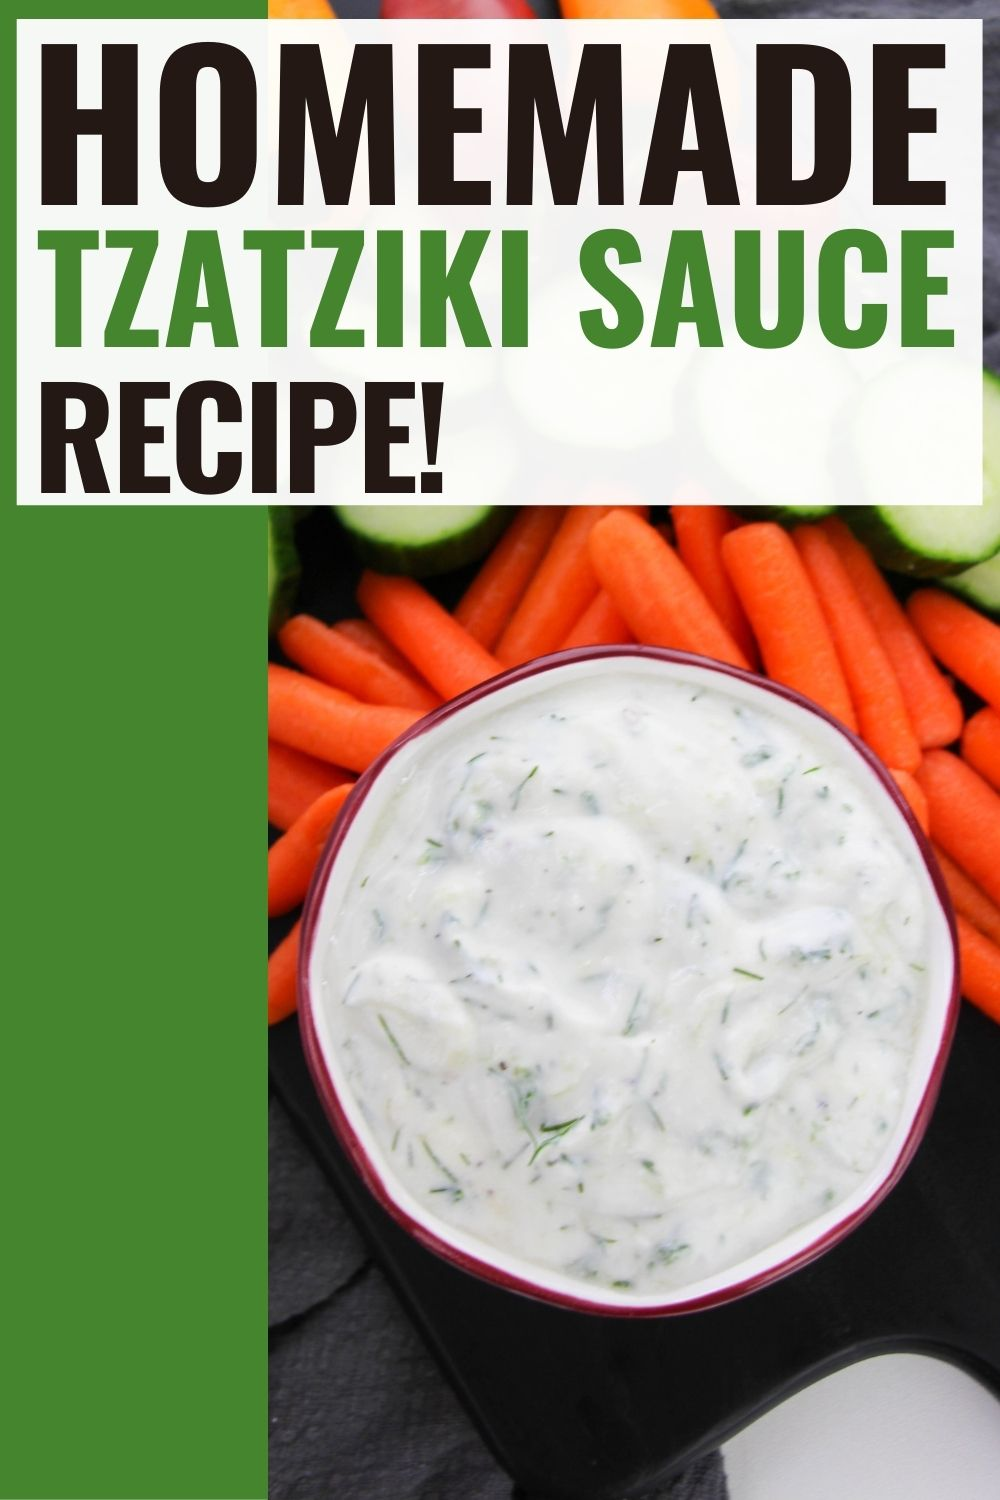 pin showing the finished tzatziki sauce ready to eat.